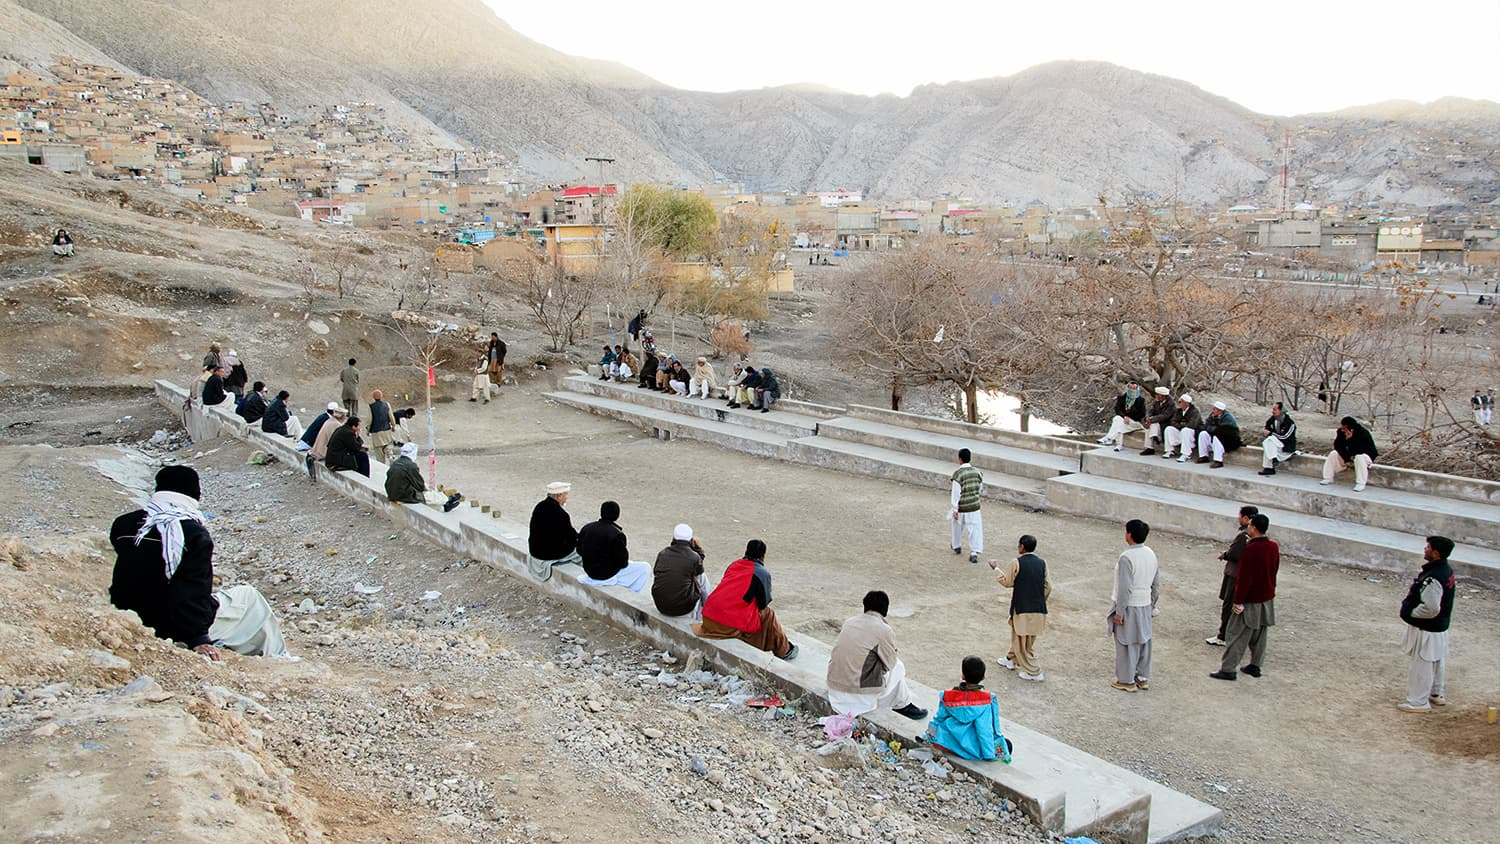 People of all ages gather to watch the game of Sang Girag.